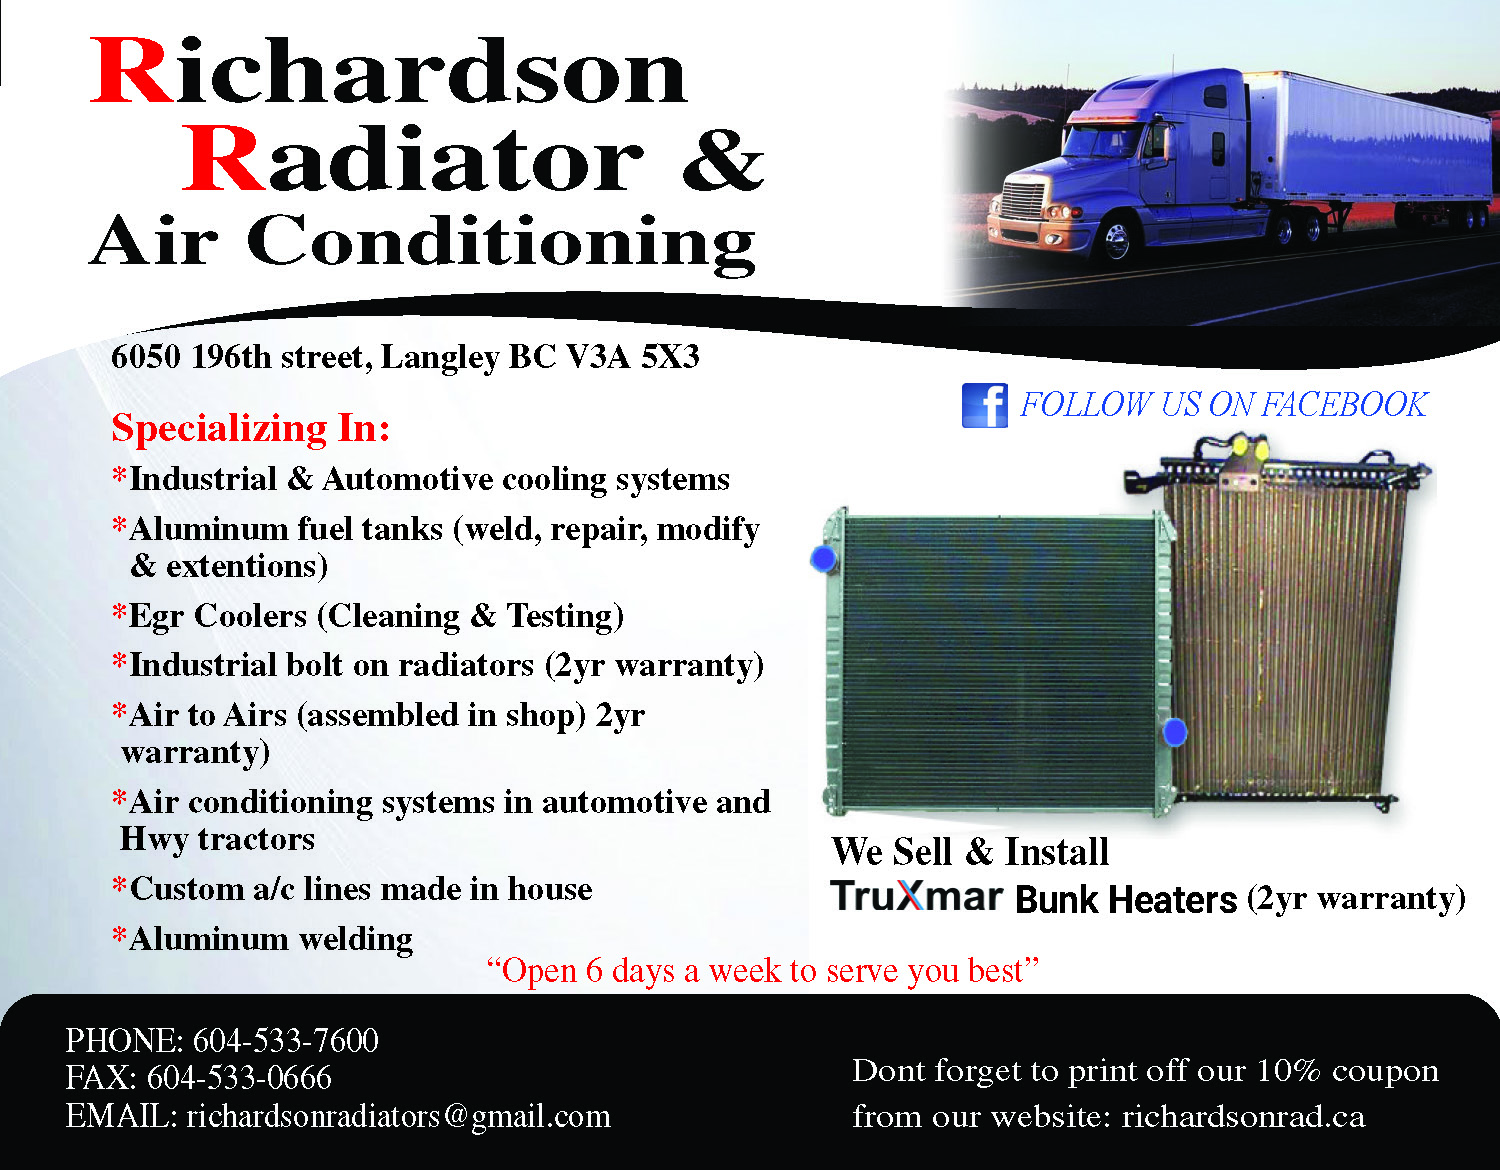 richardson-radiator-air-conditioning-IOfYQQj.jpeg